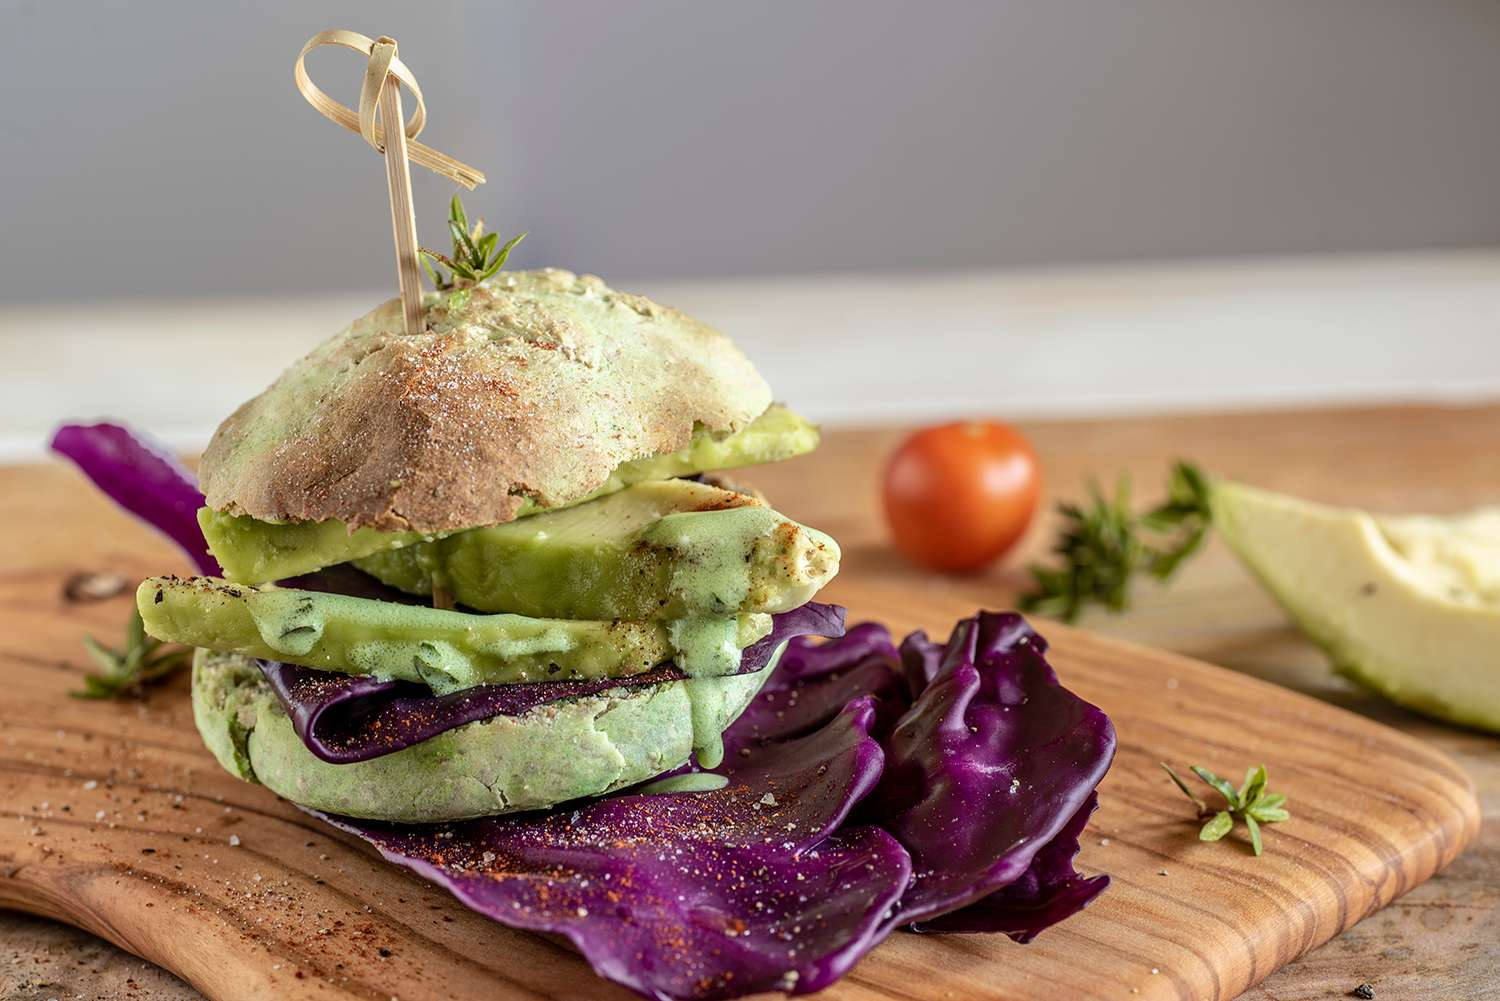 Avocado burger with bread made with wholemeal dough and avocado